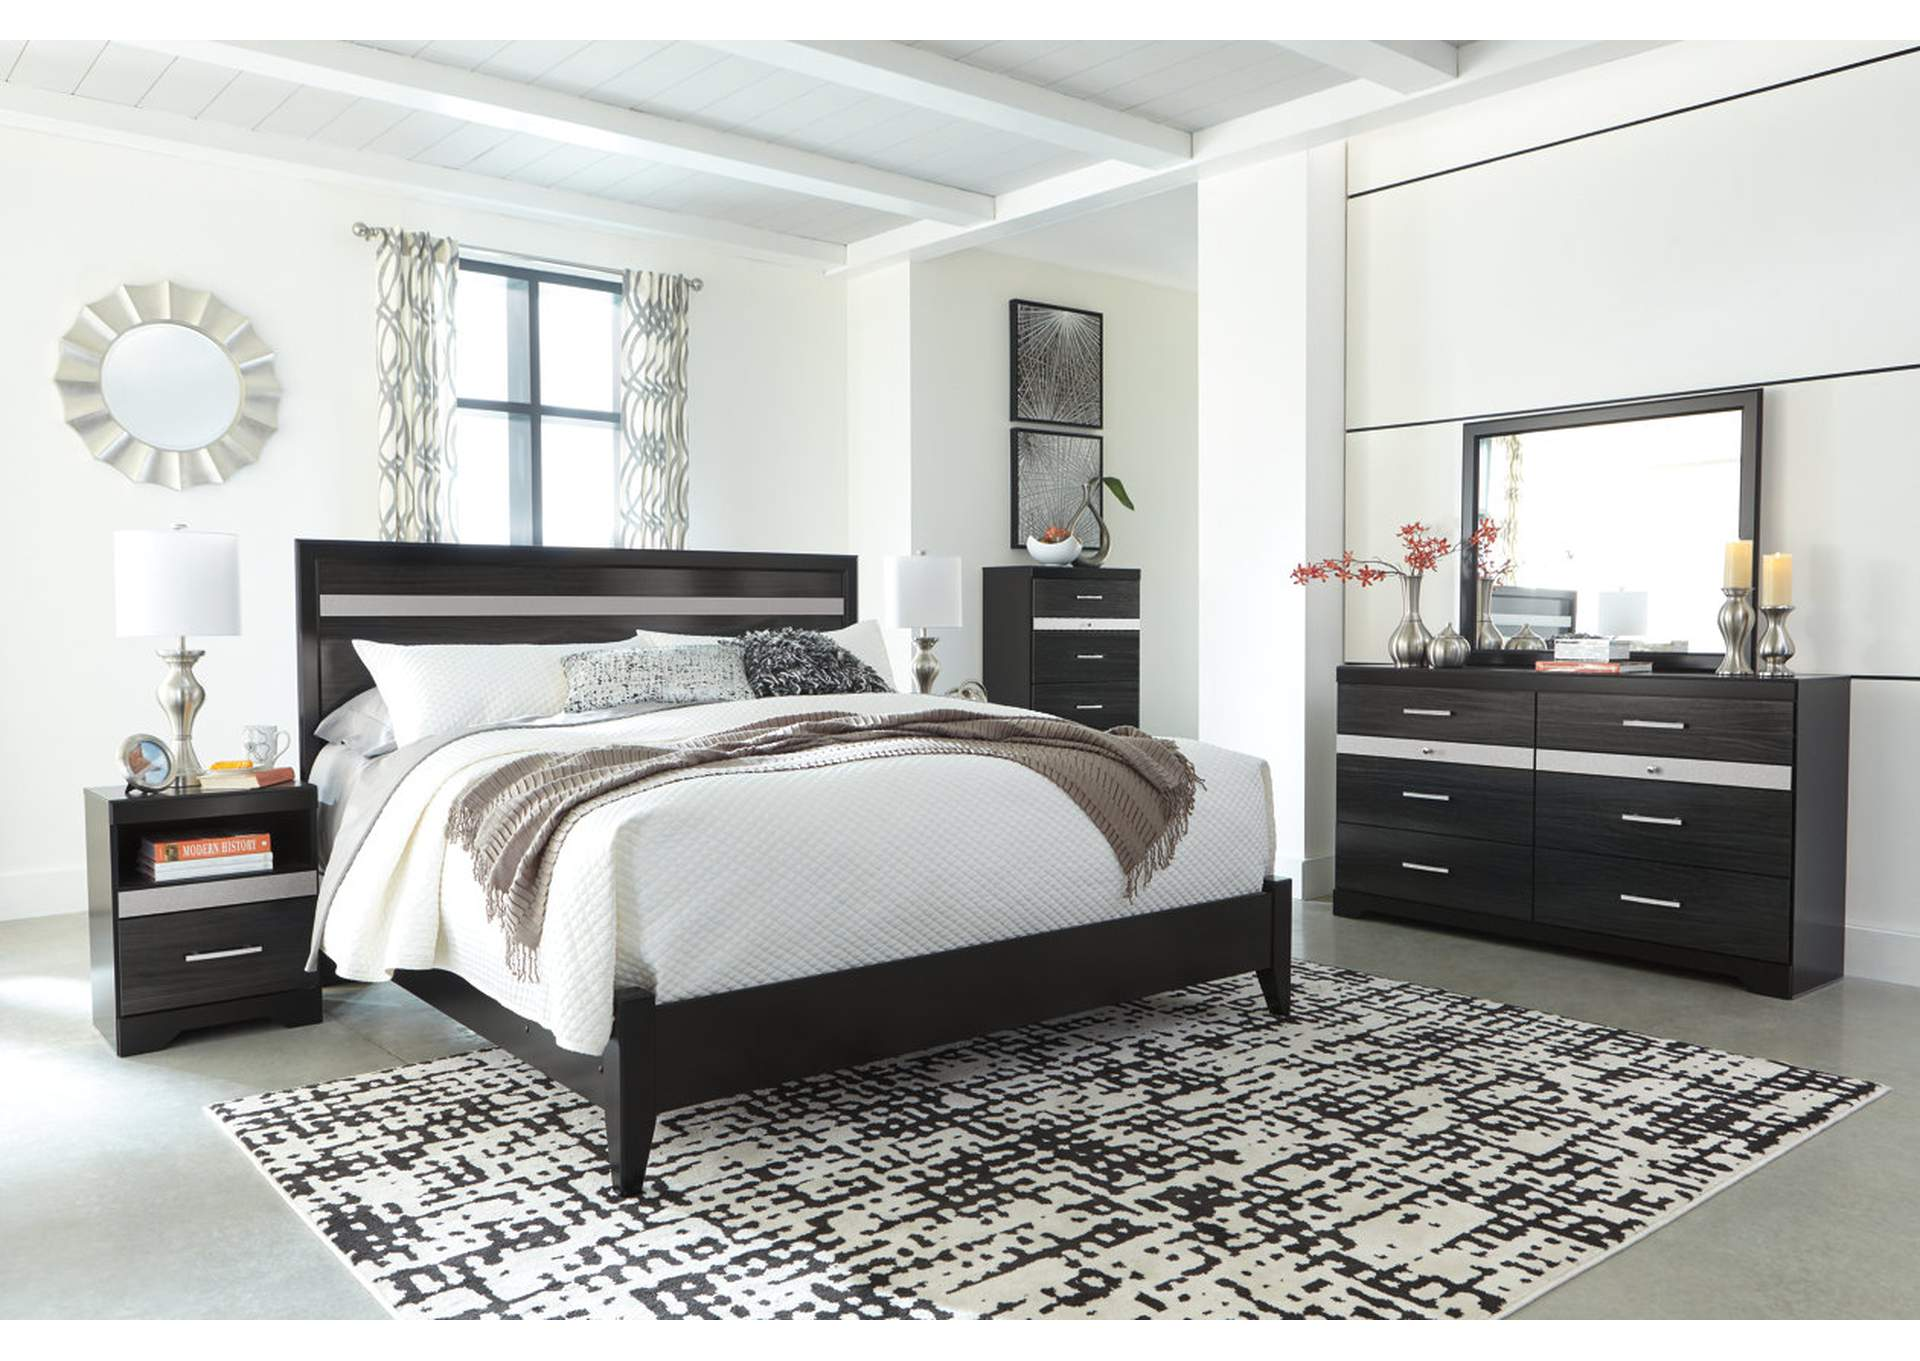 Starberry Black King Panel Bed w/Dresser, Mirror, Chest and Nightstand,Signature Design By Ashley